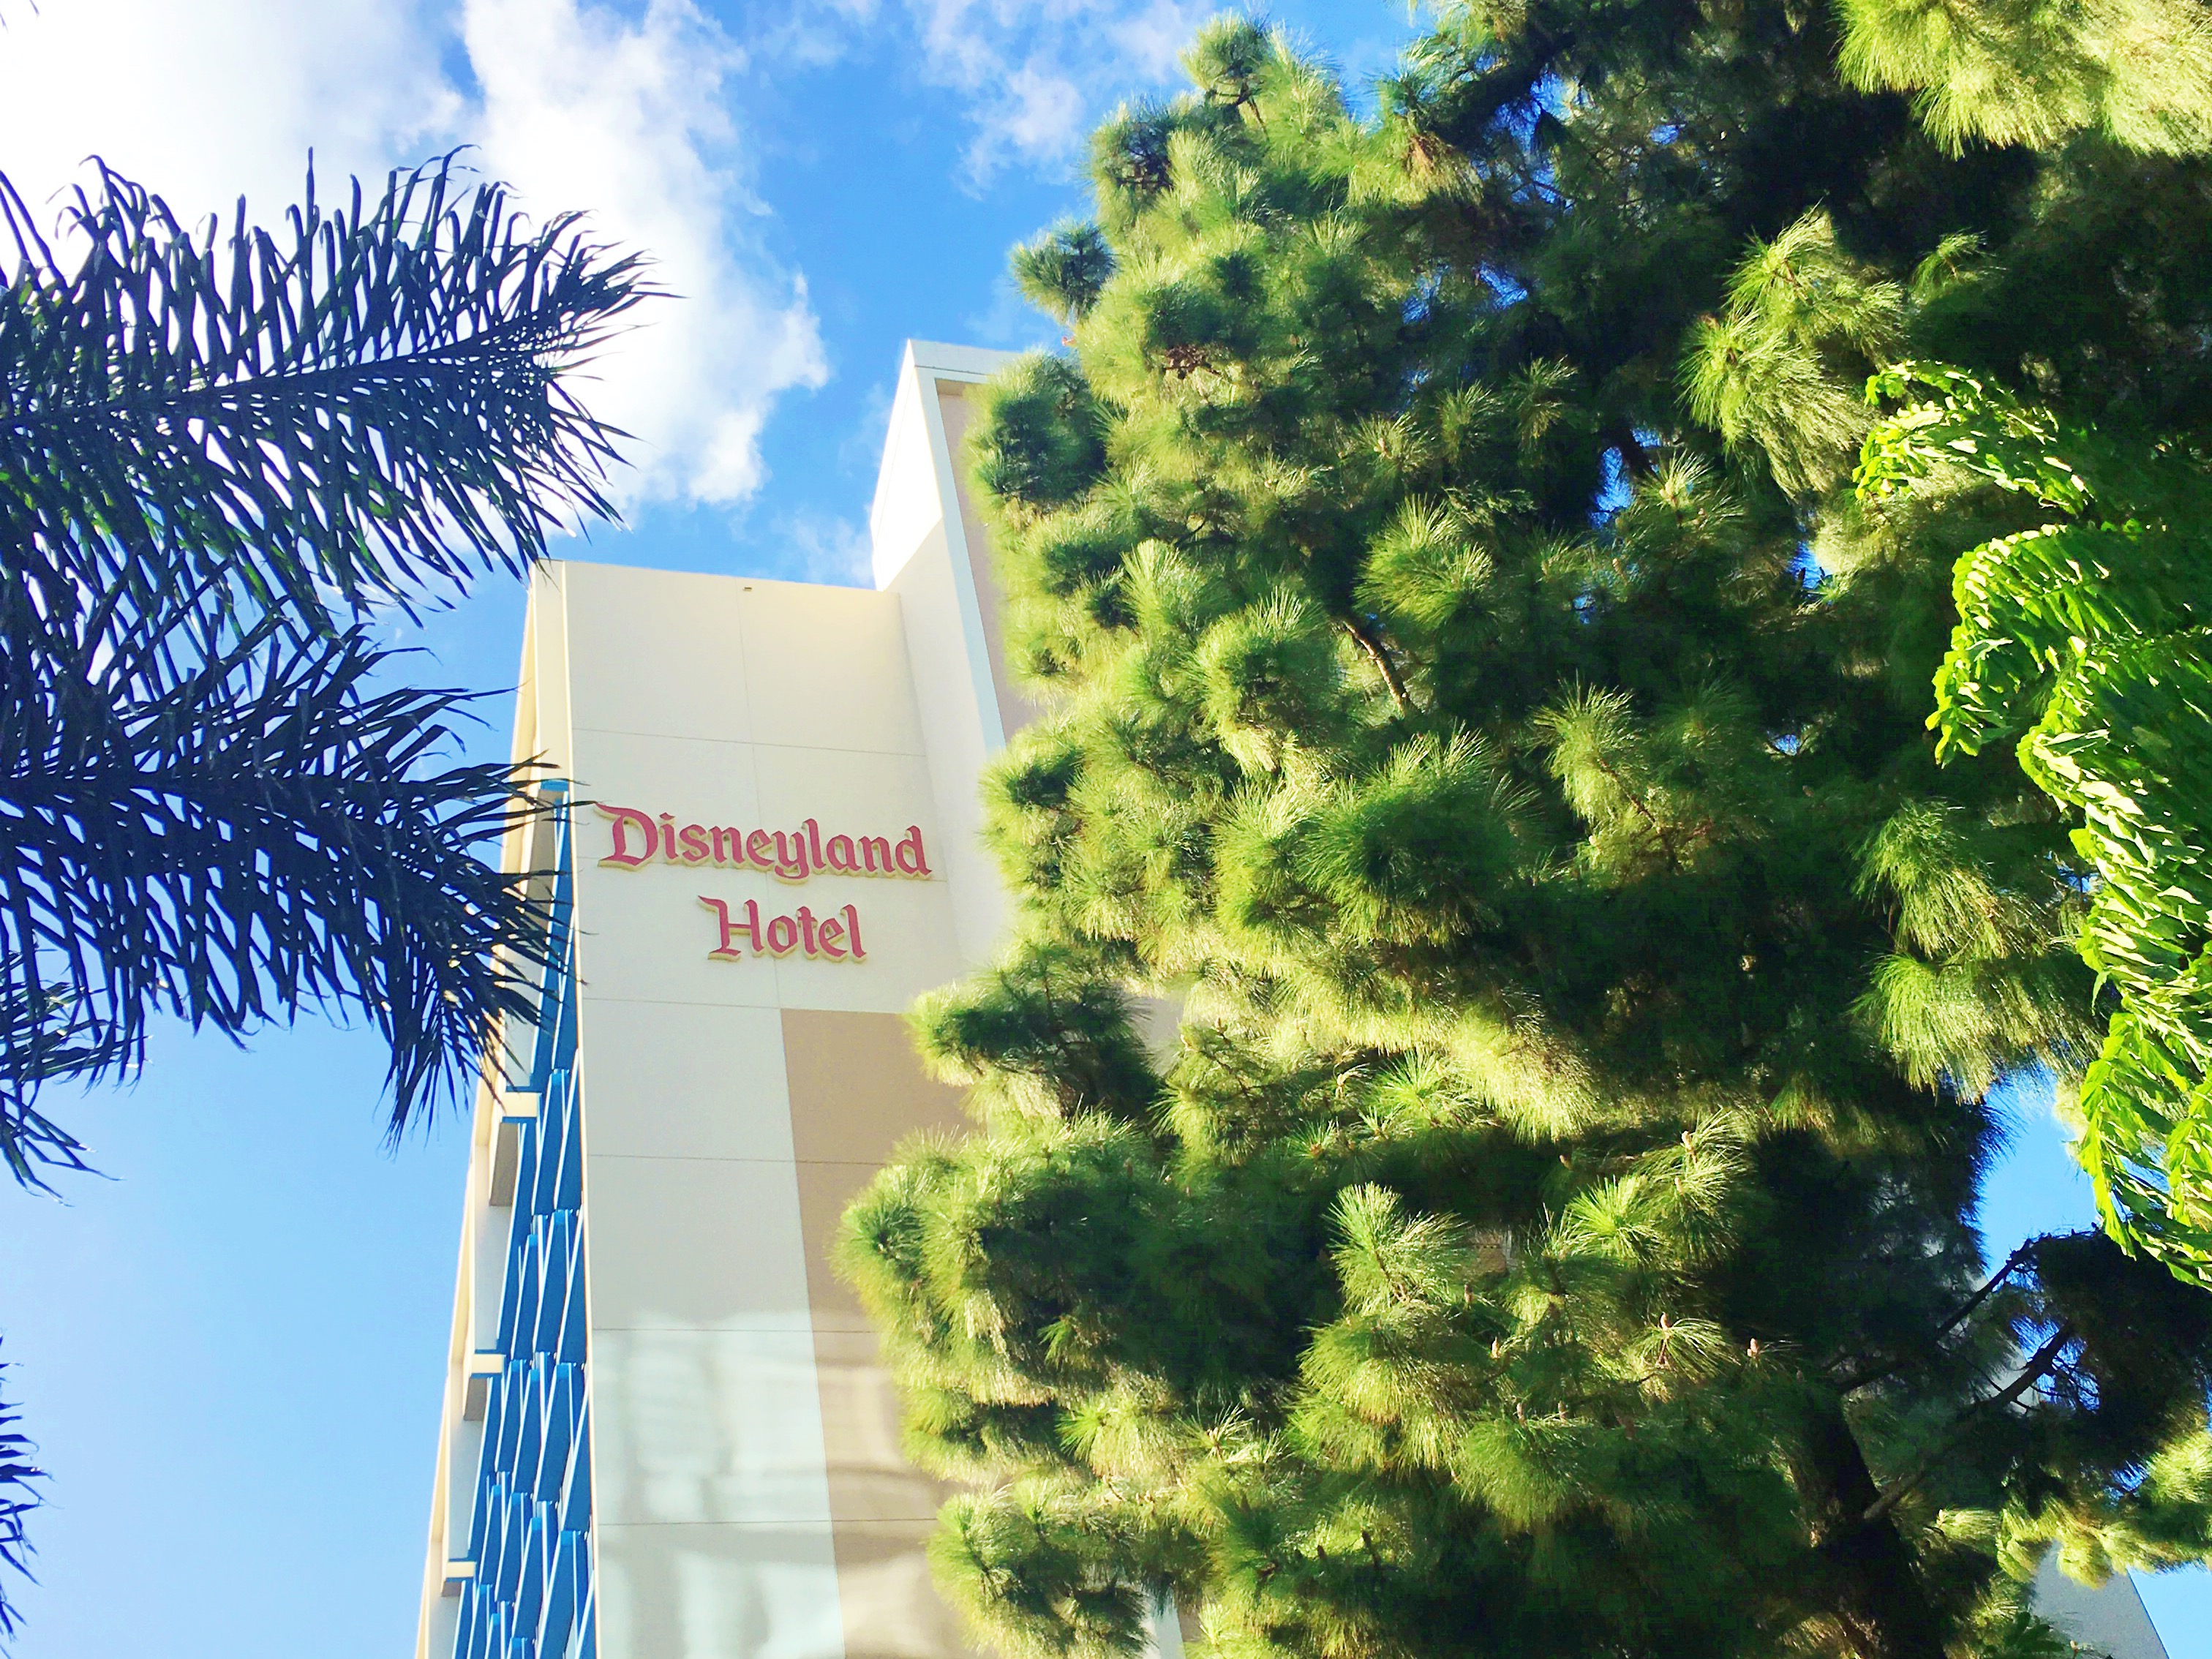 Disneyland for Kids 3 and Under - Best rides, shows and tips